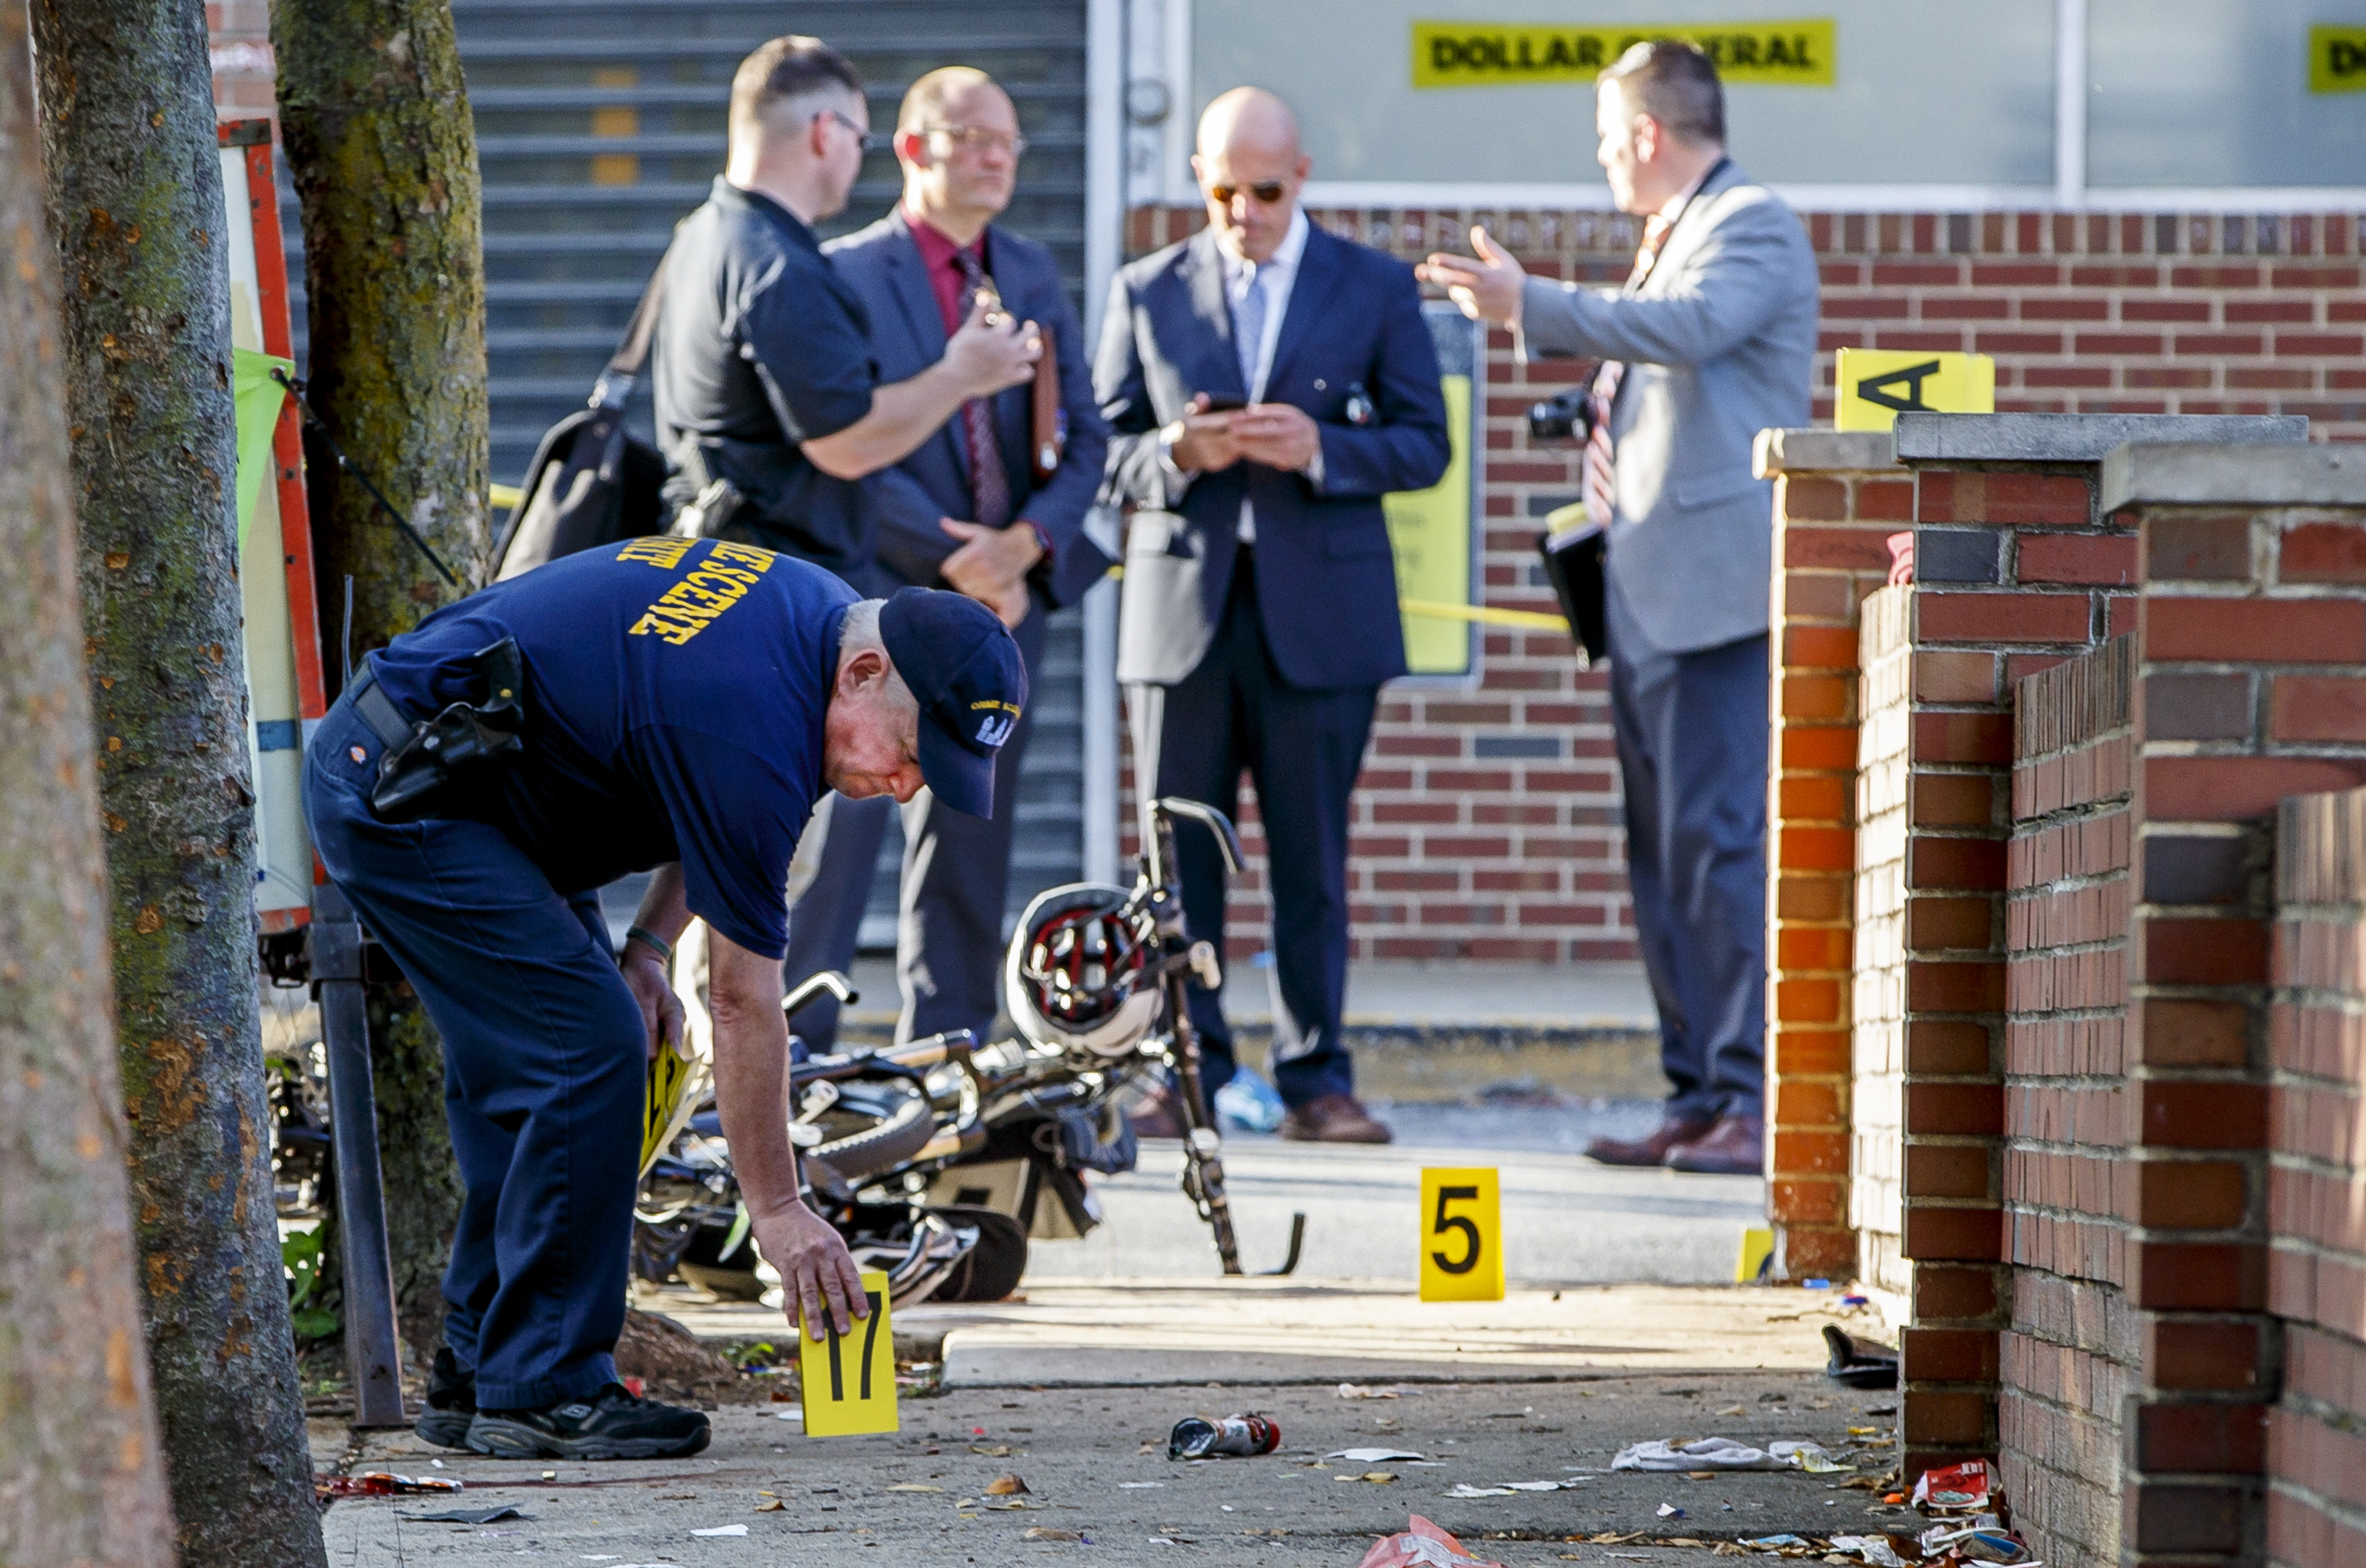 A member of the Philadelphia Police Crime Scene Investigation unit places a number where he has found another shell casing at the crime scene at Germantown Avenue where five people were shot by a single assailant who fled by automible, on October 3, 2018.